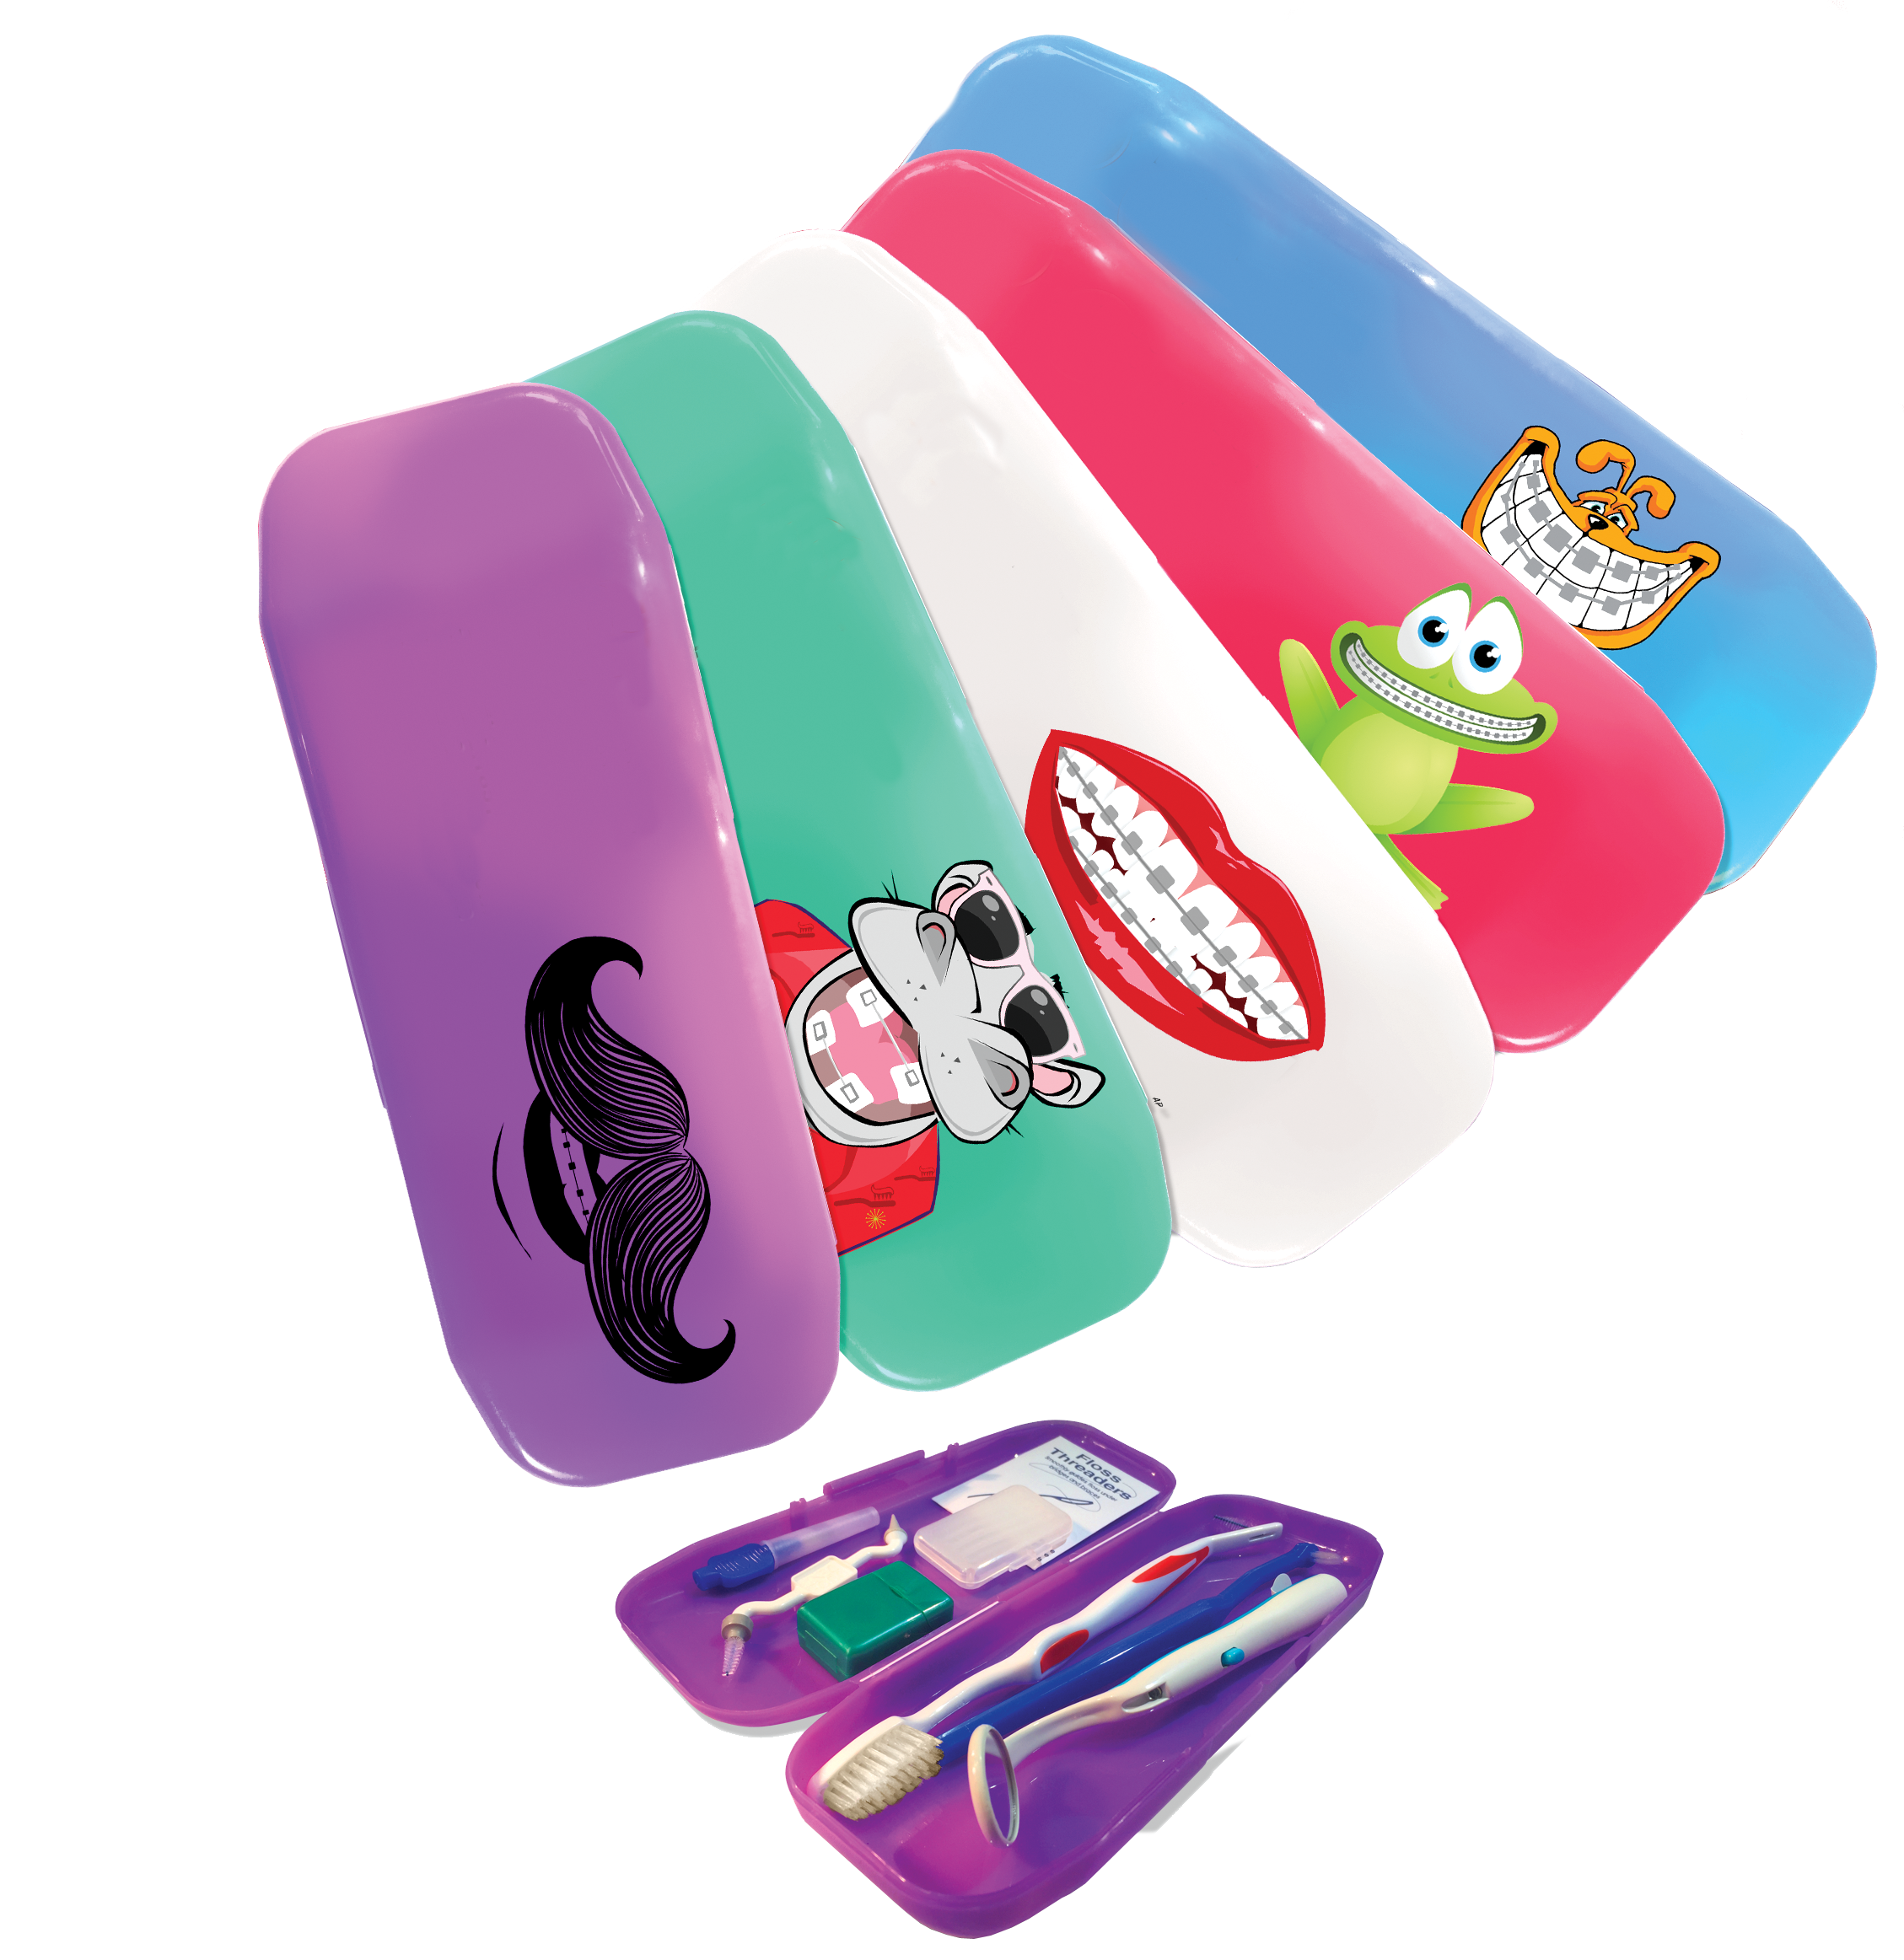 Orthodontic Home Care Kits - 8 piece kits come in assorted colors with your choice of character or you may opt for your office logo (personalization would be a 1 time set up fee of $35)Reg. Price $3.99 per kit. (12 kits w/o personalization or 144 kits w/personalization)